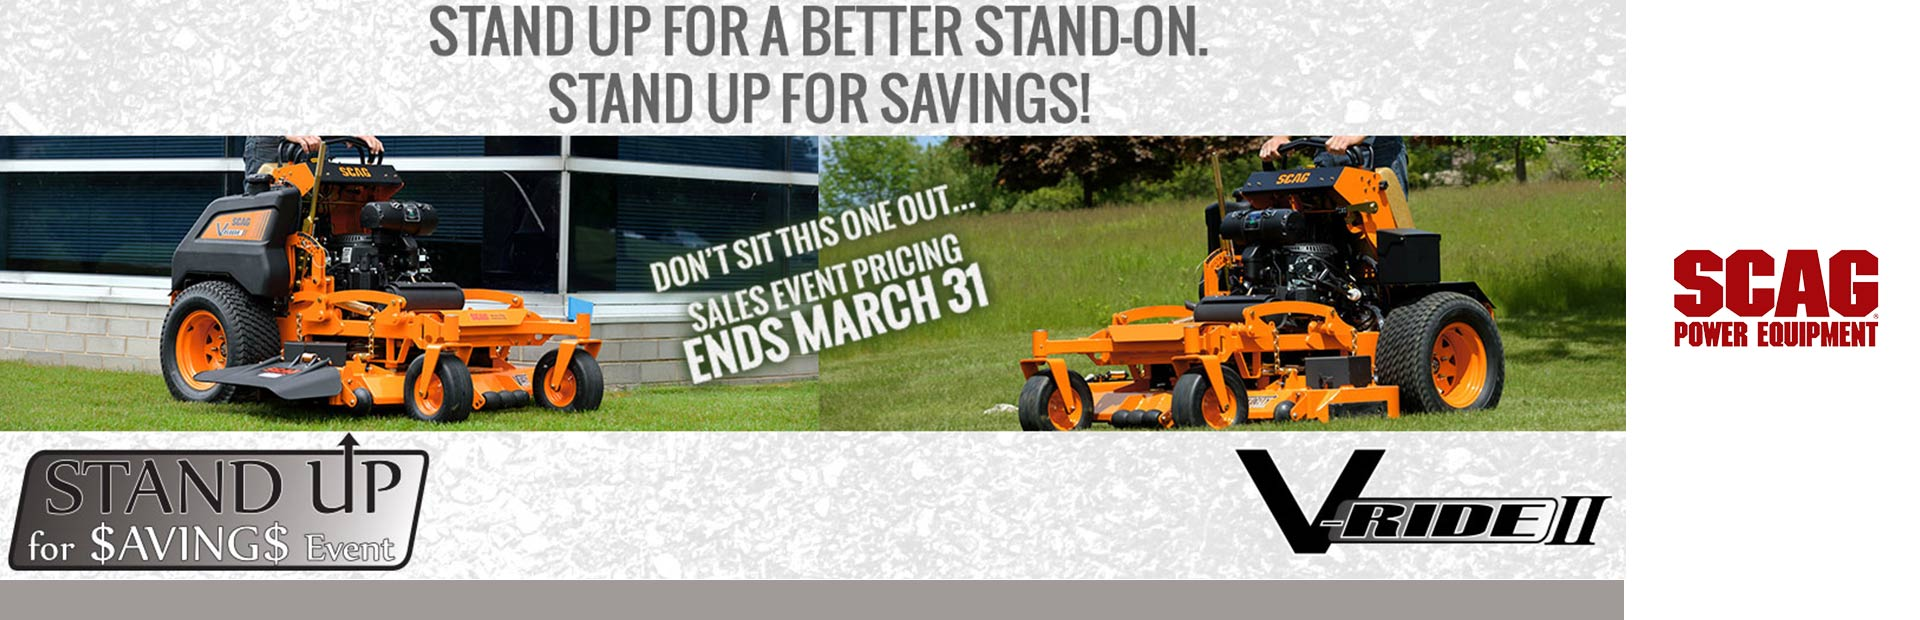 Stand Up for Savings Event